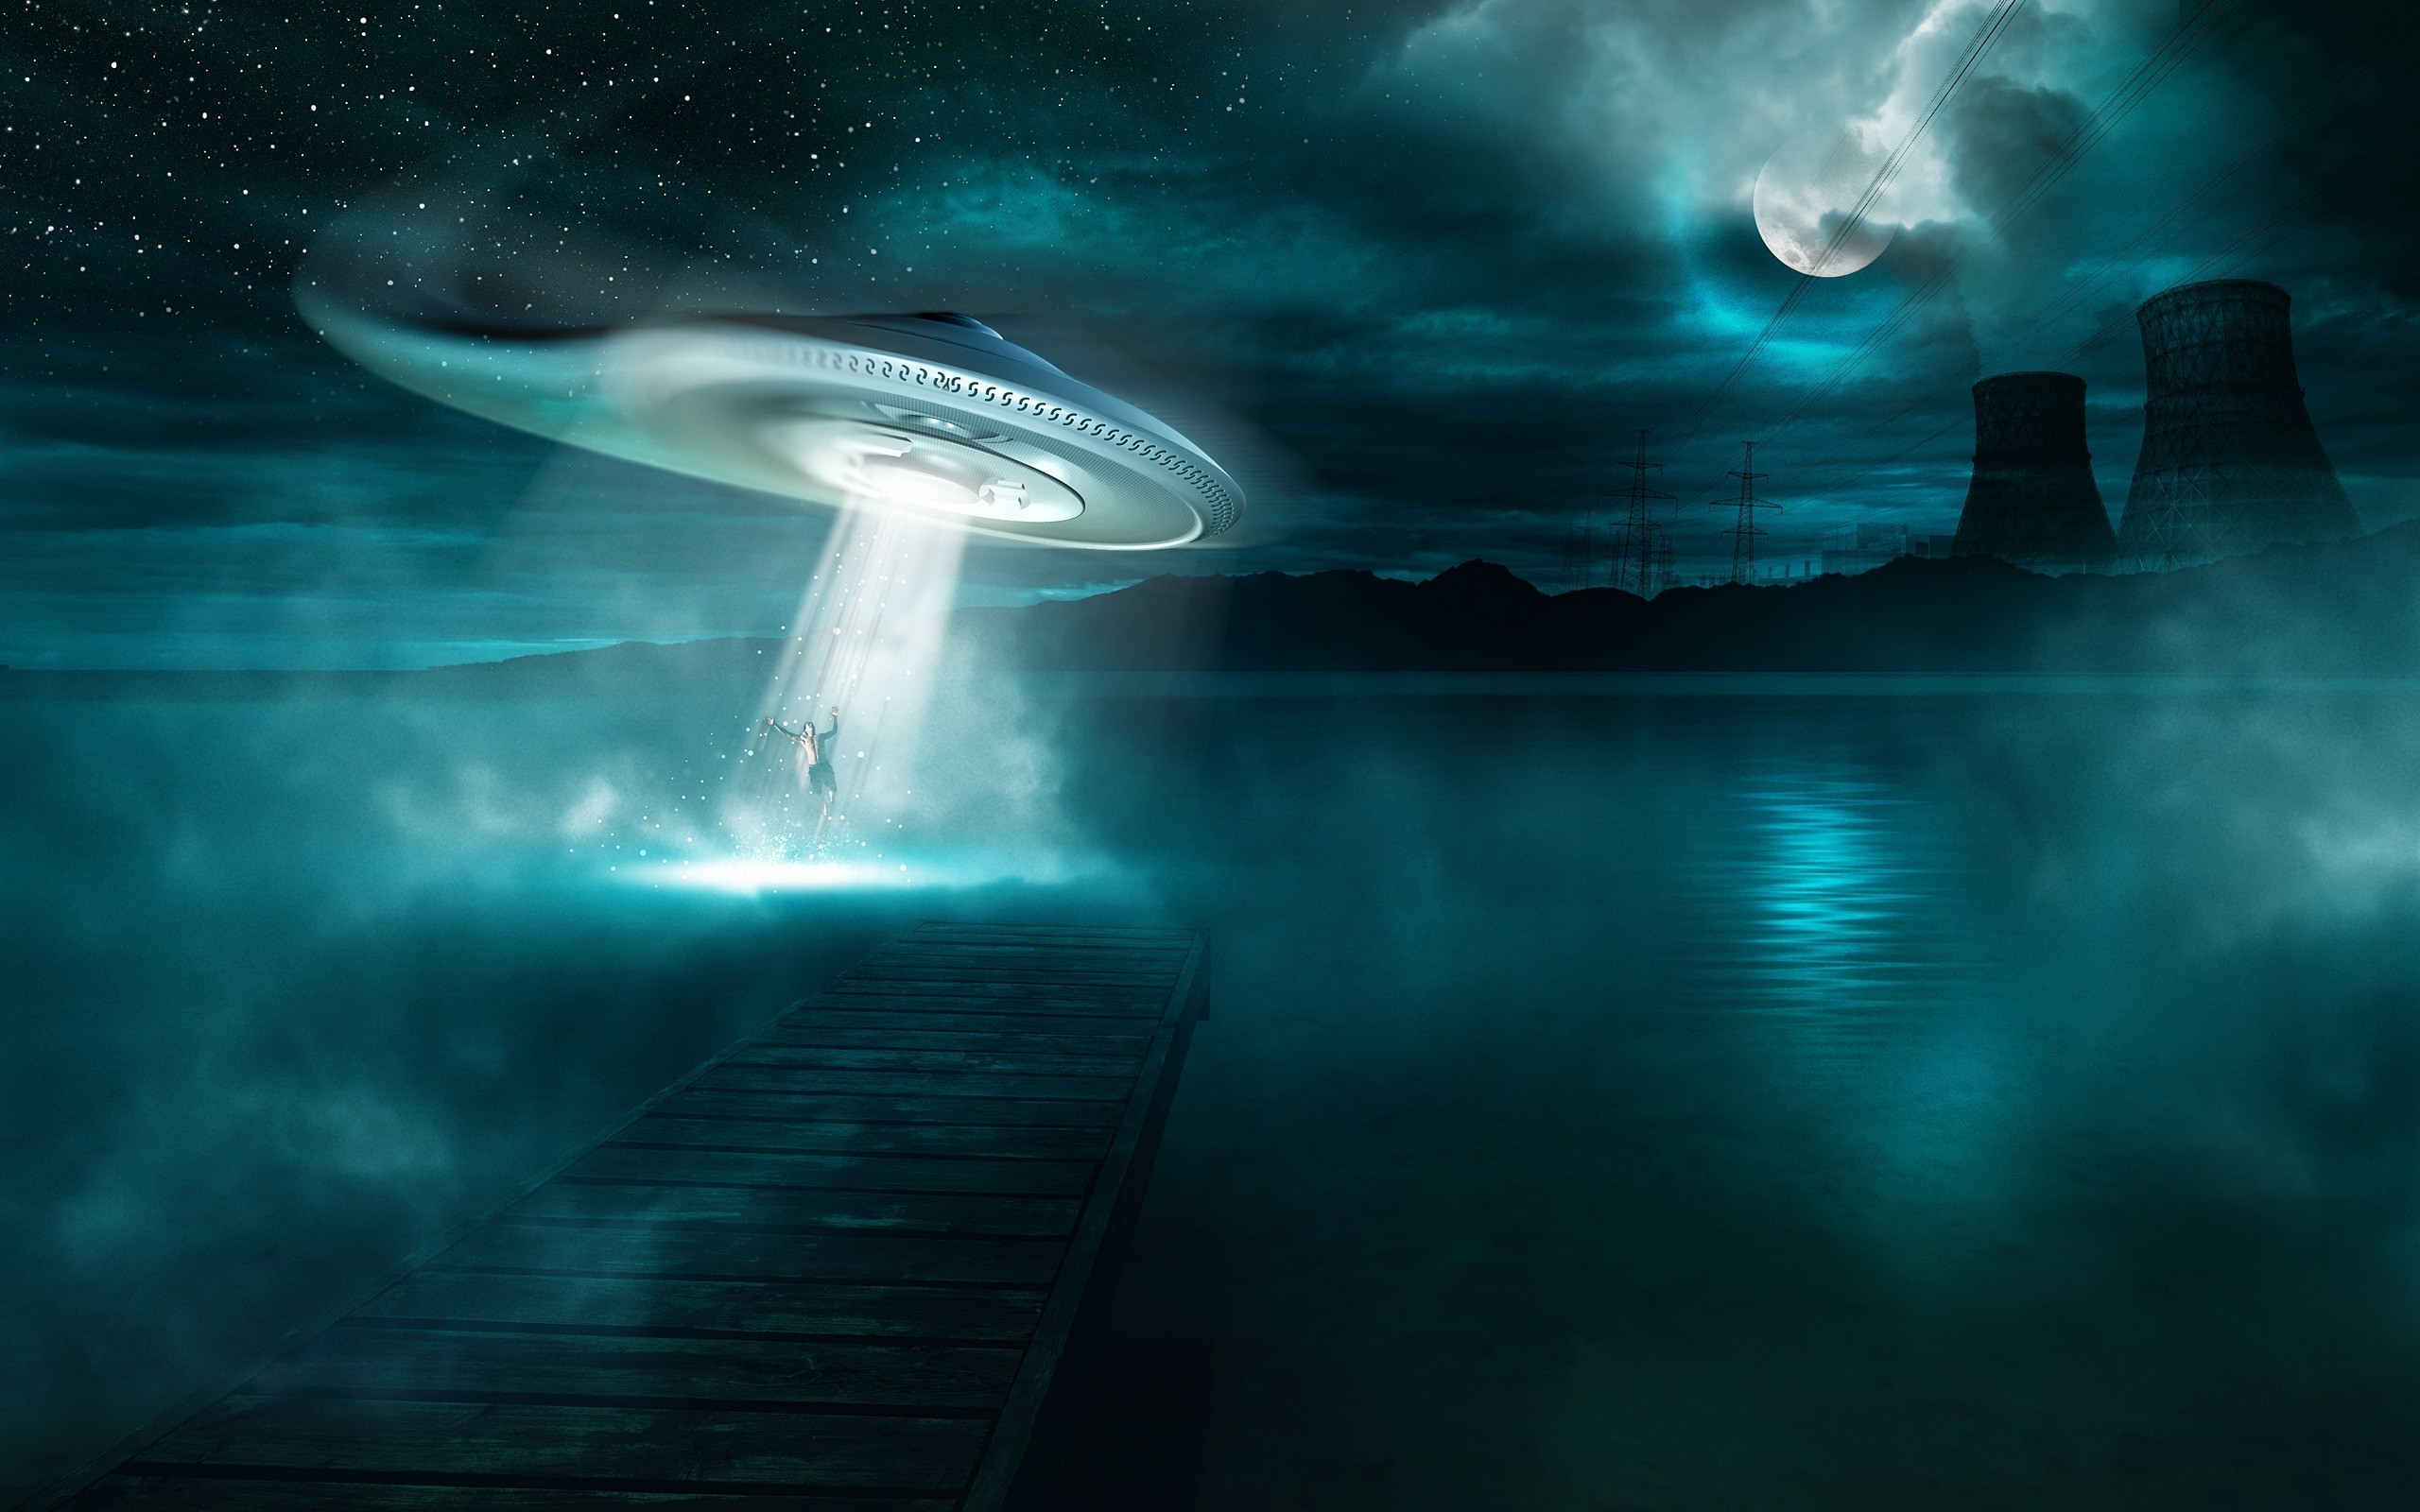 alien spaceship wallpaper 74 images